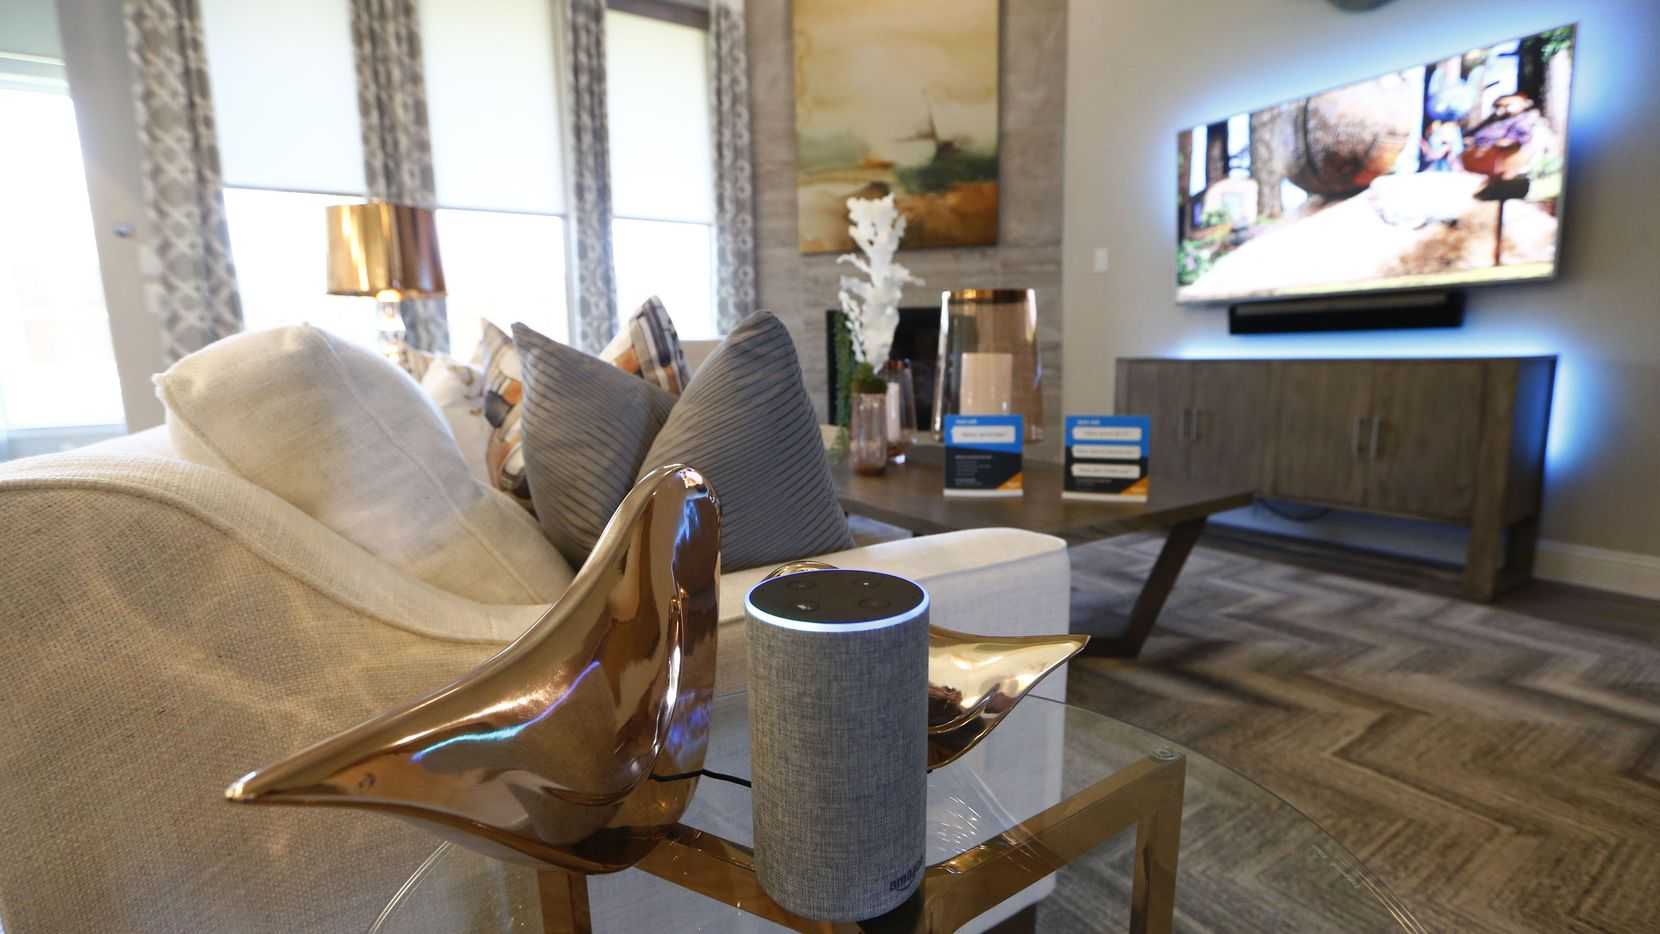 An Amazon Experience Centers model home built by Lennar in Dallas features a second-generation Amazon Echo that controls the window blinds as well as televisions and lighting.